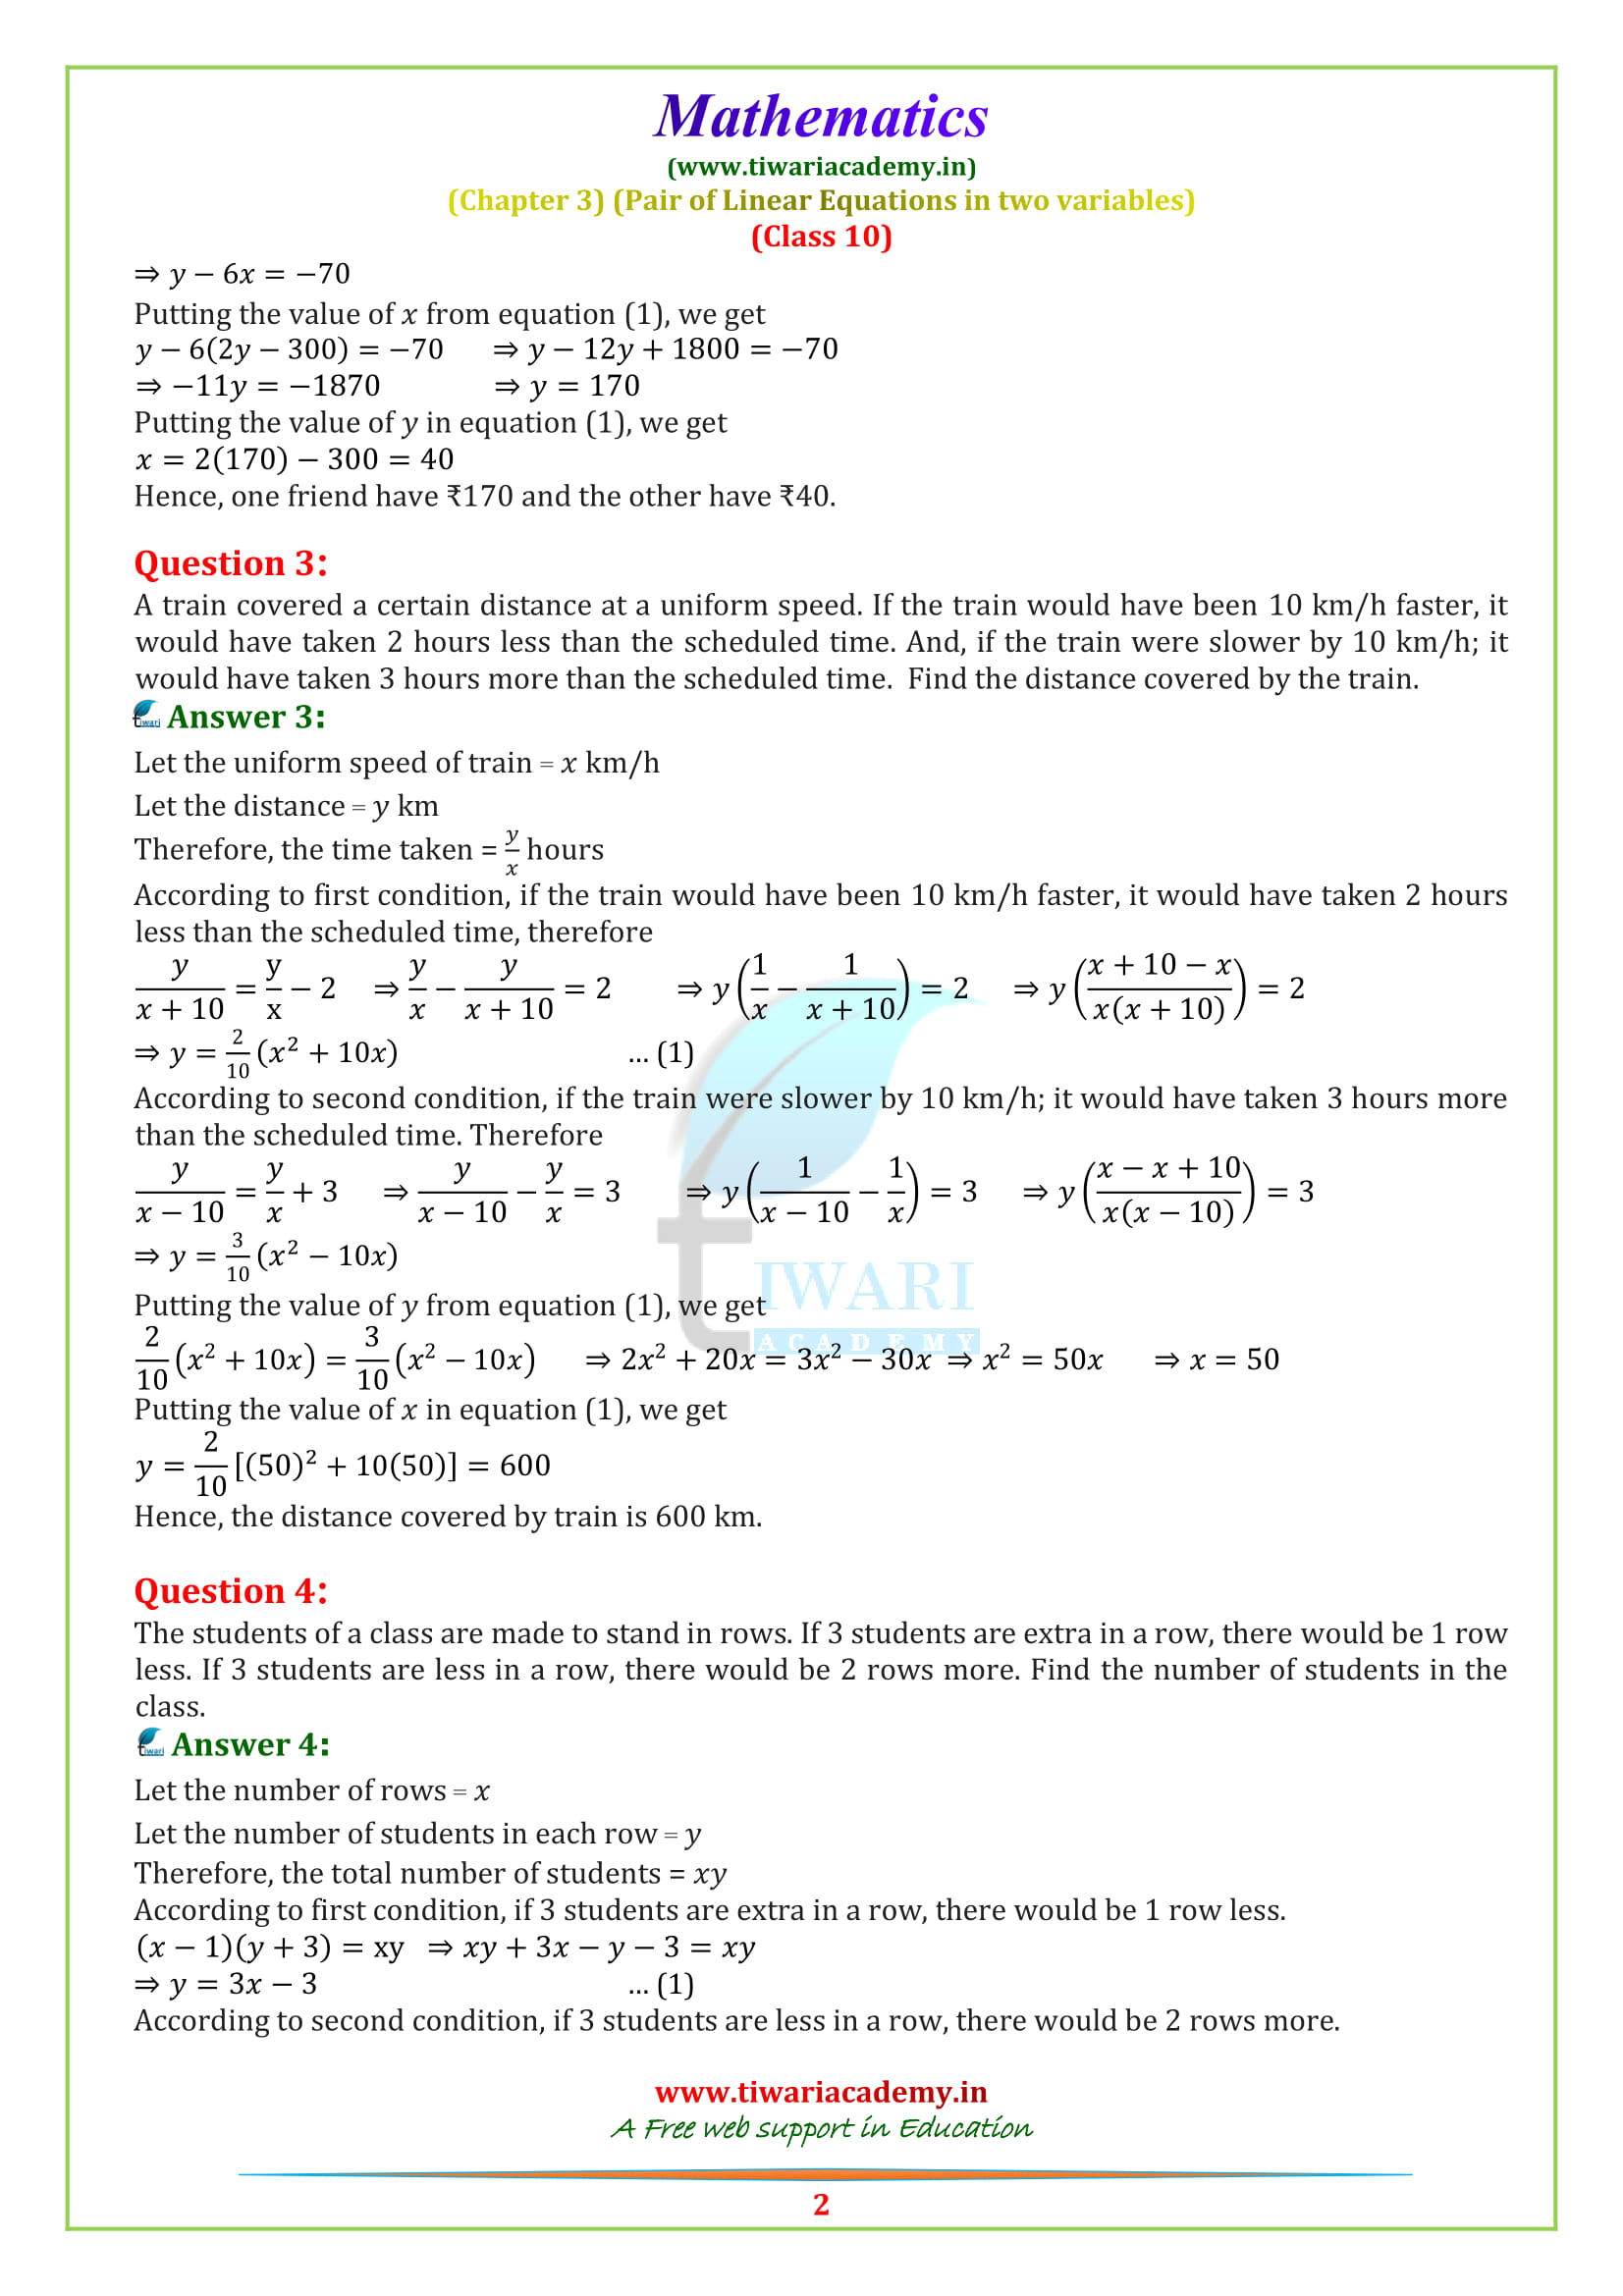 10 Maths optional exercise 3.7 solutions question 1, 2, 3, 4